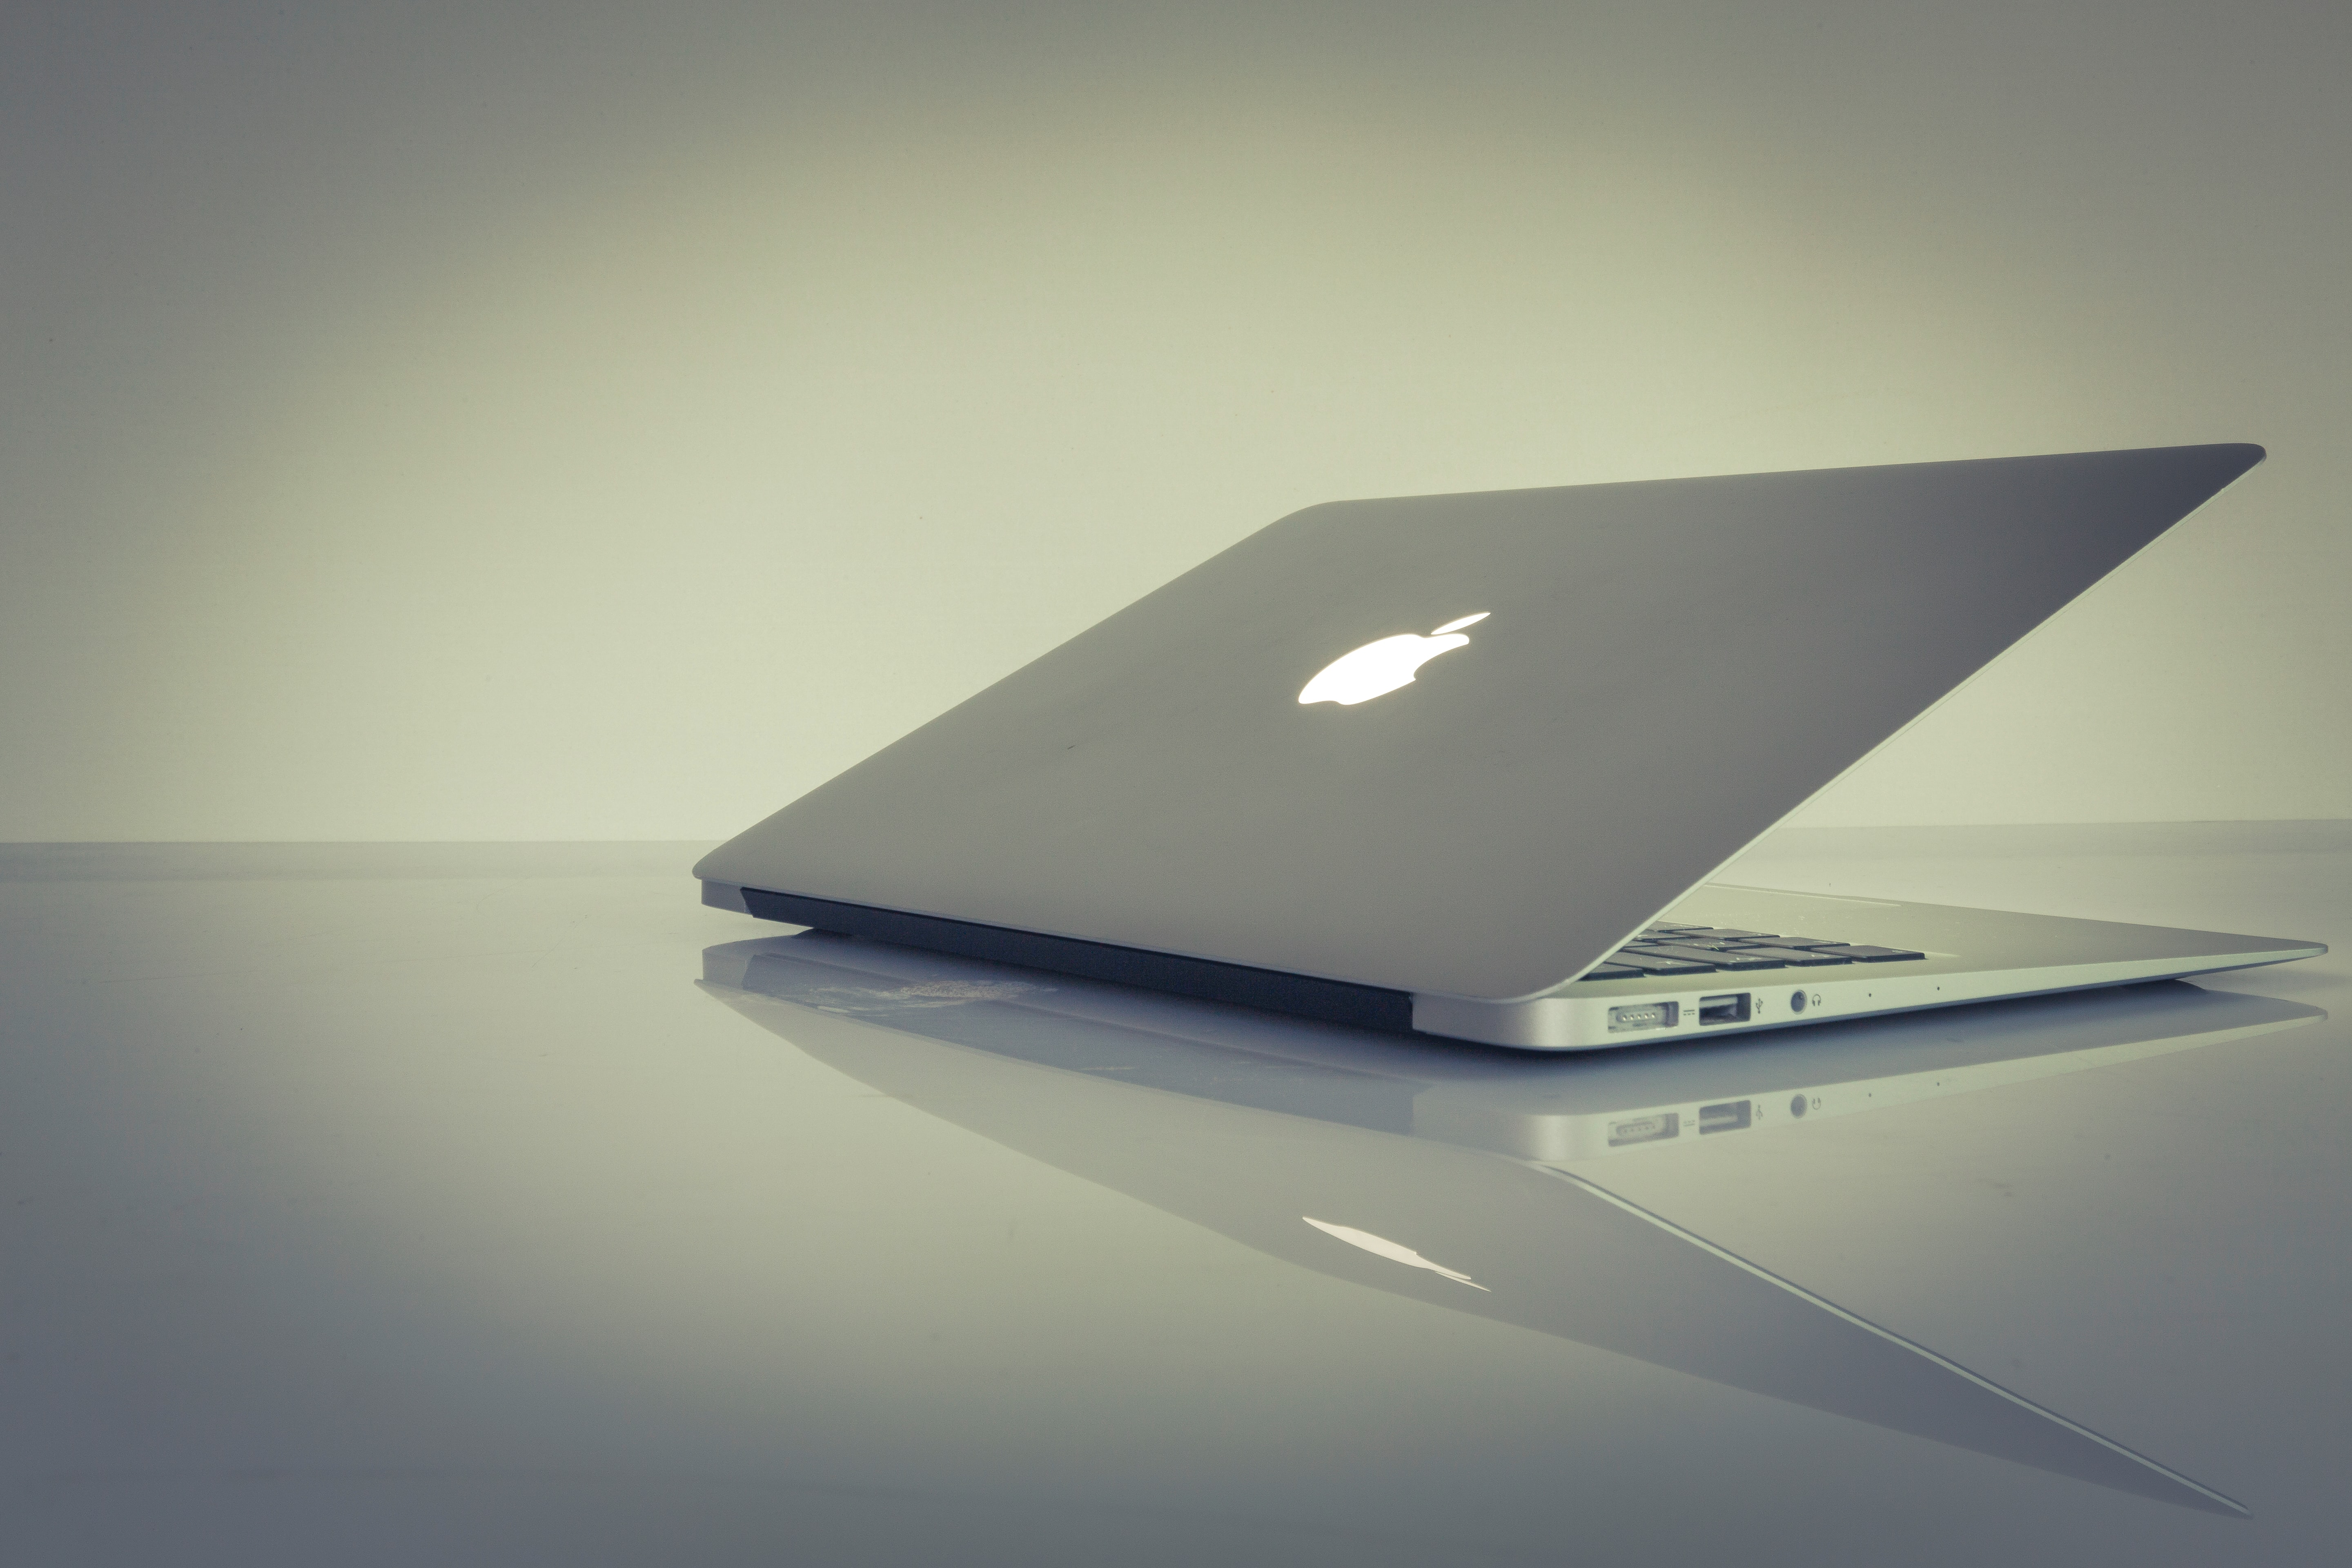 MacBook Air on top of white table